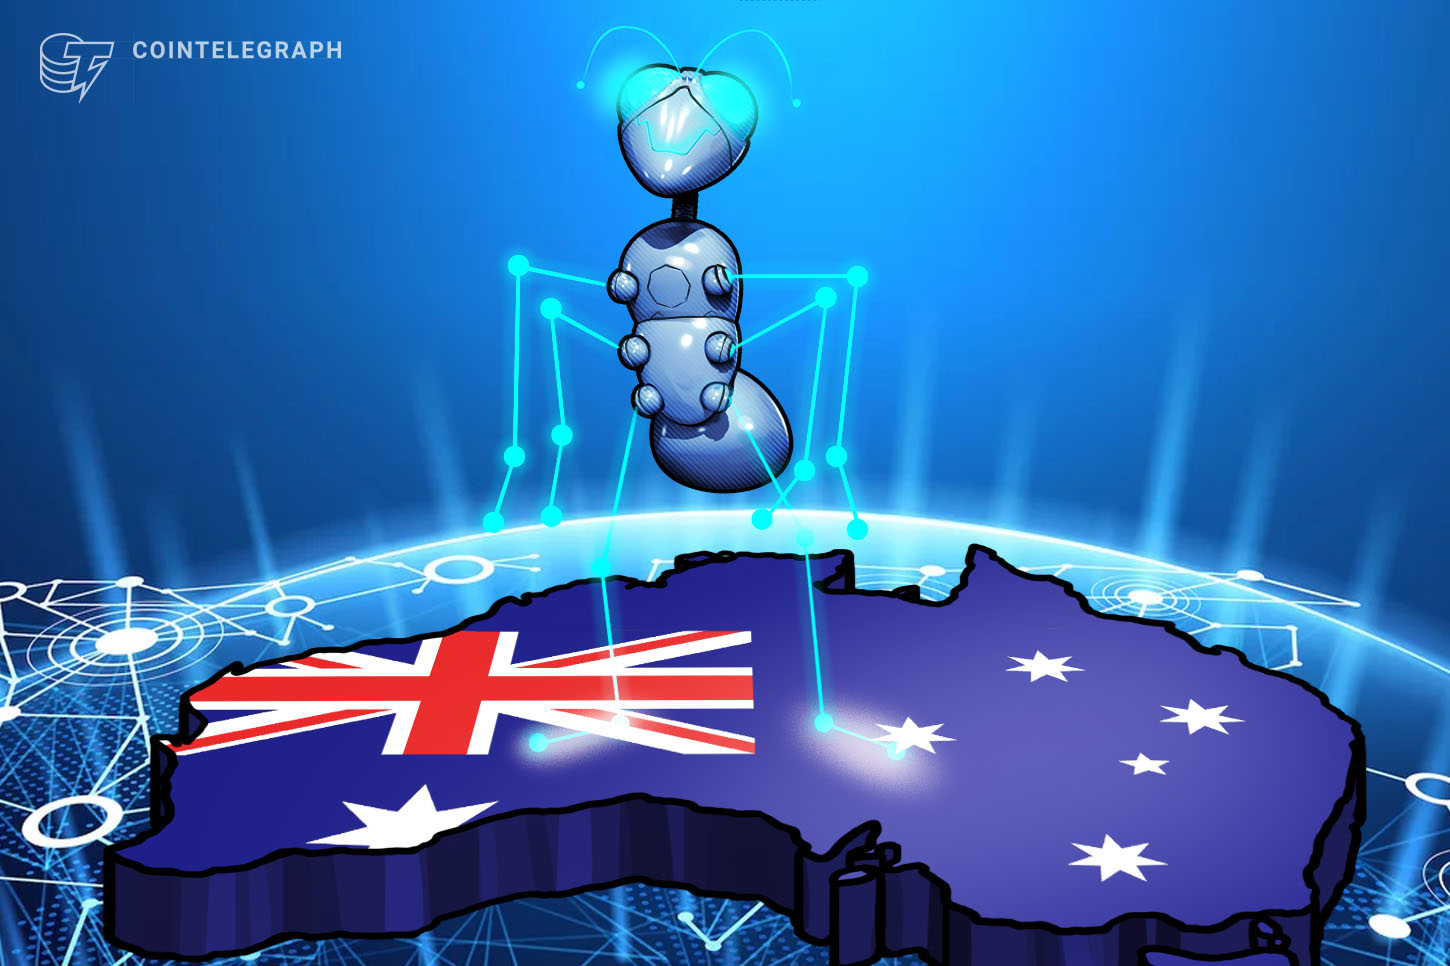 Australian government embraces blockchain with new trial and public servants' network